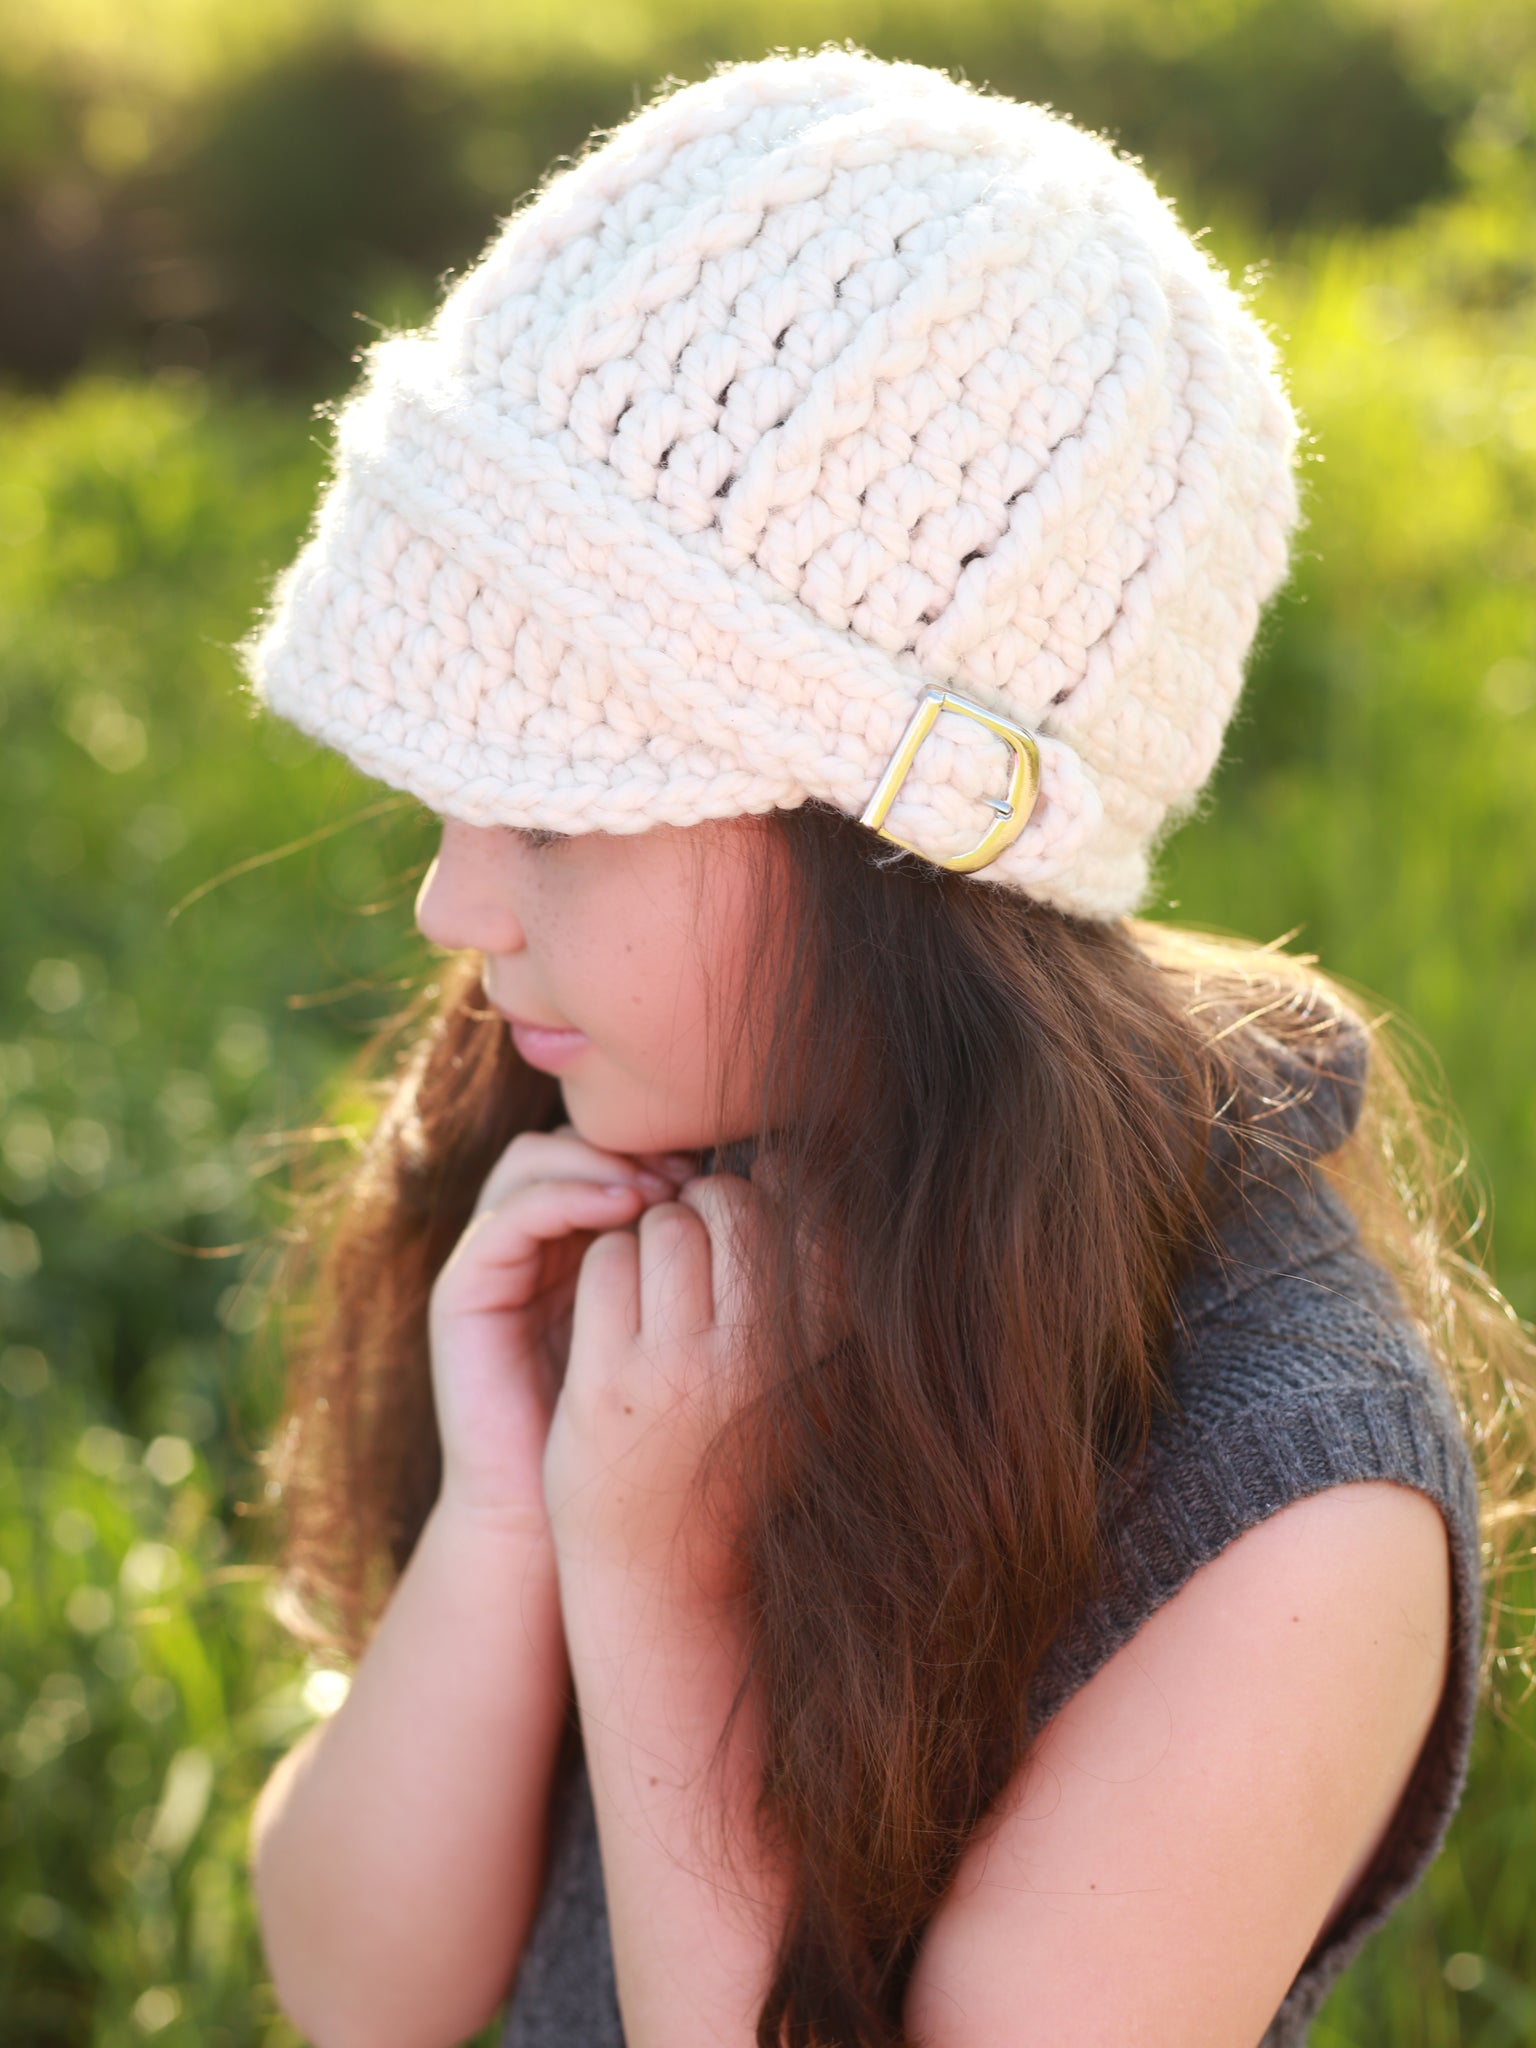 4T to Preteen Kids Cream Buckle Beanie by Two Seaside Babes